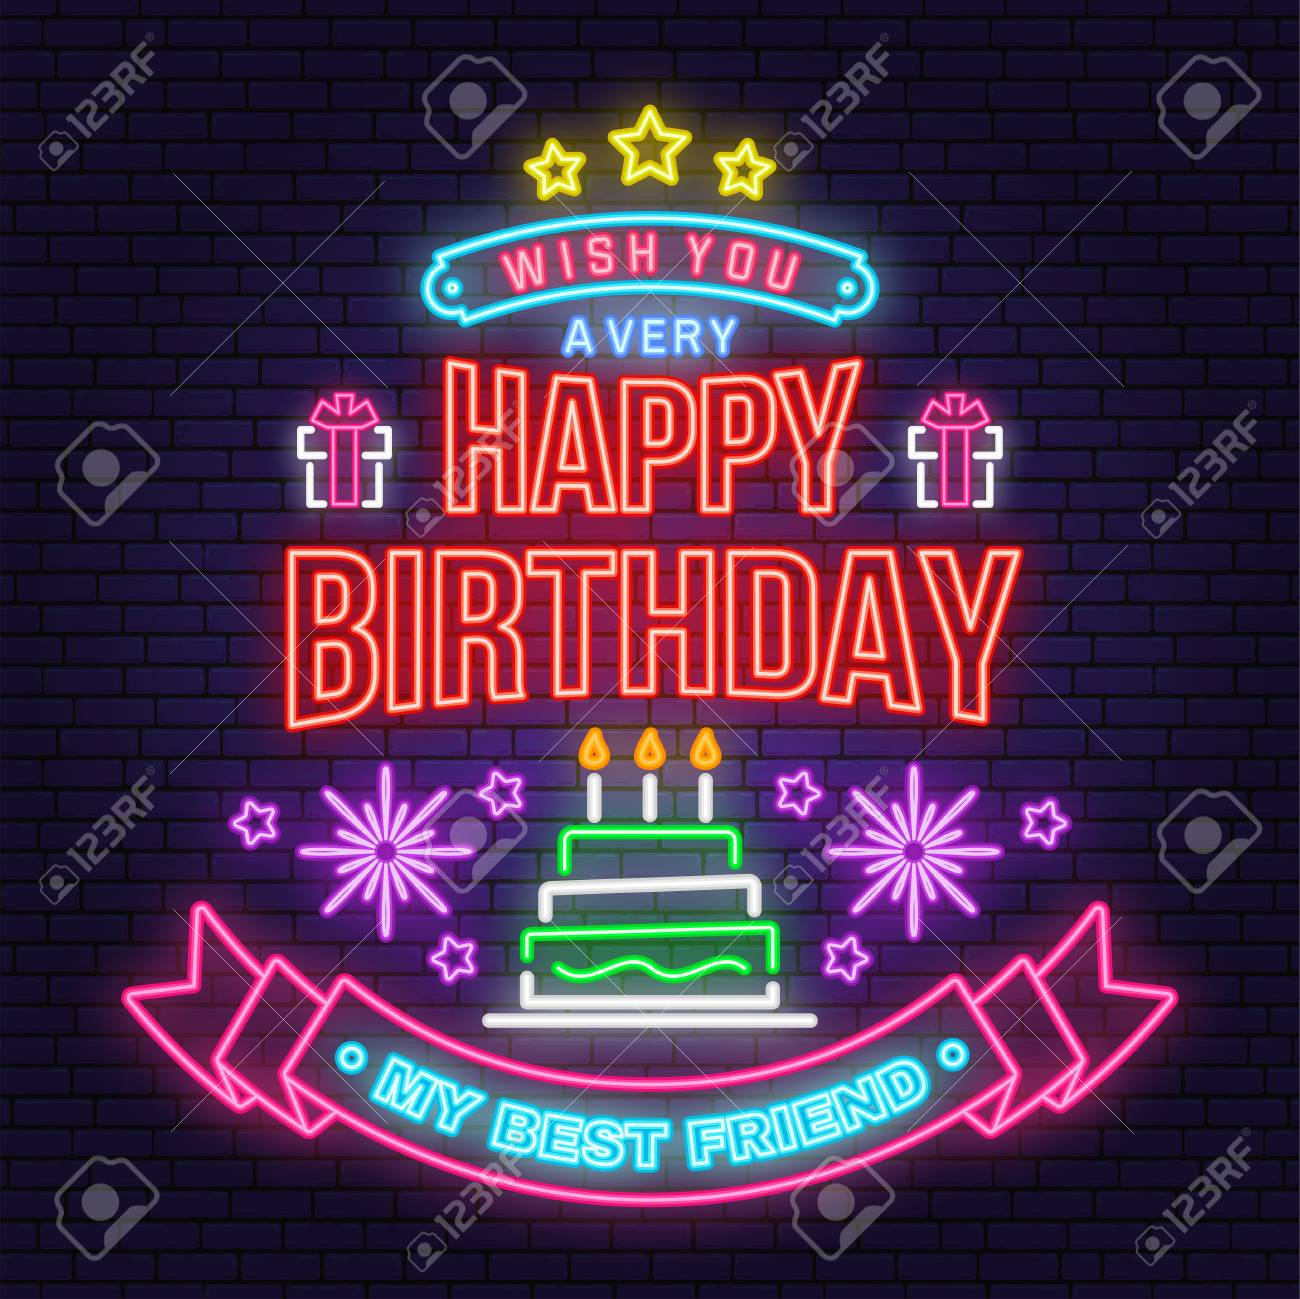 Wish You A Very Happy Birthday My Best Friend Neon Sign Badge Royalty Free Cliparts Vectors And Stock Illustration Image 119591157